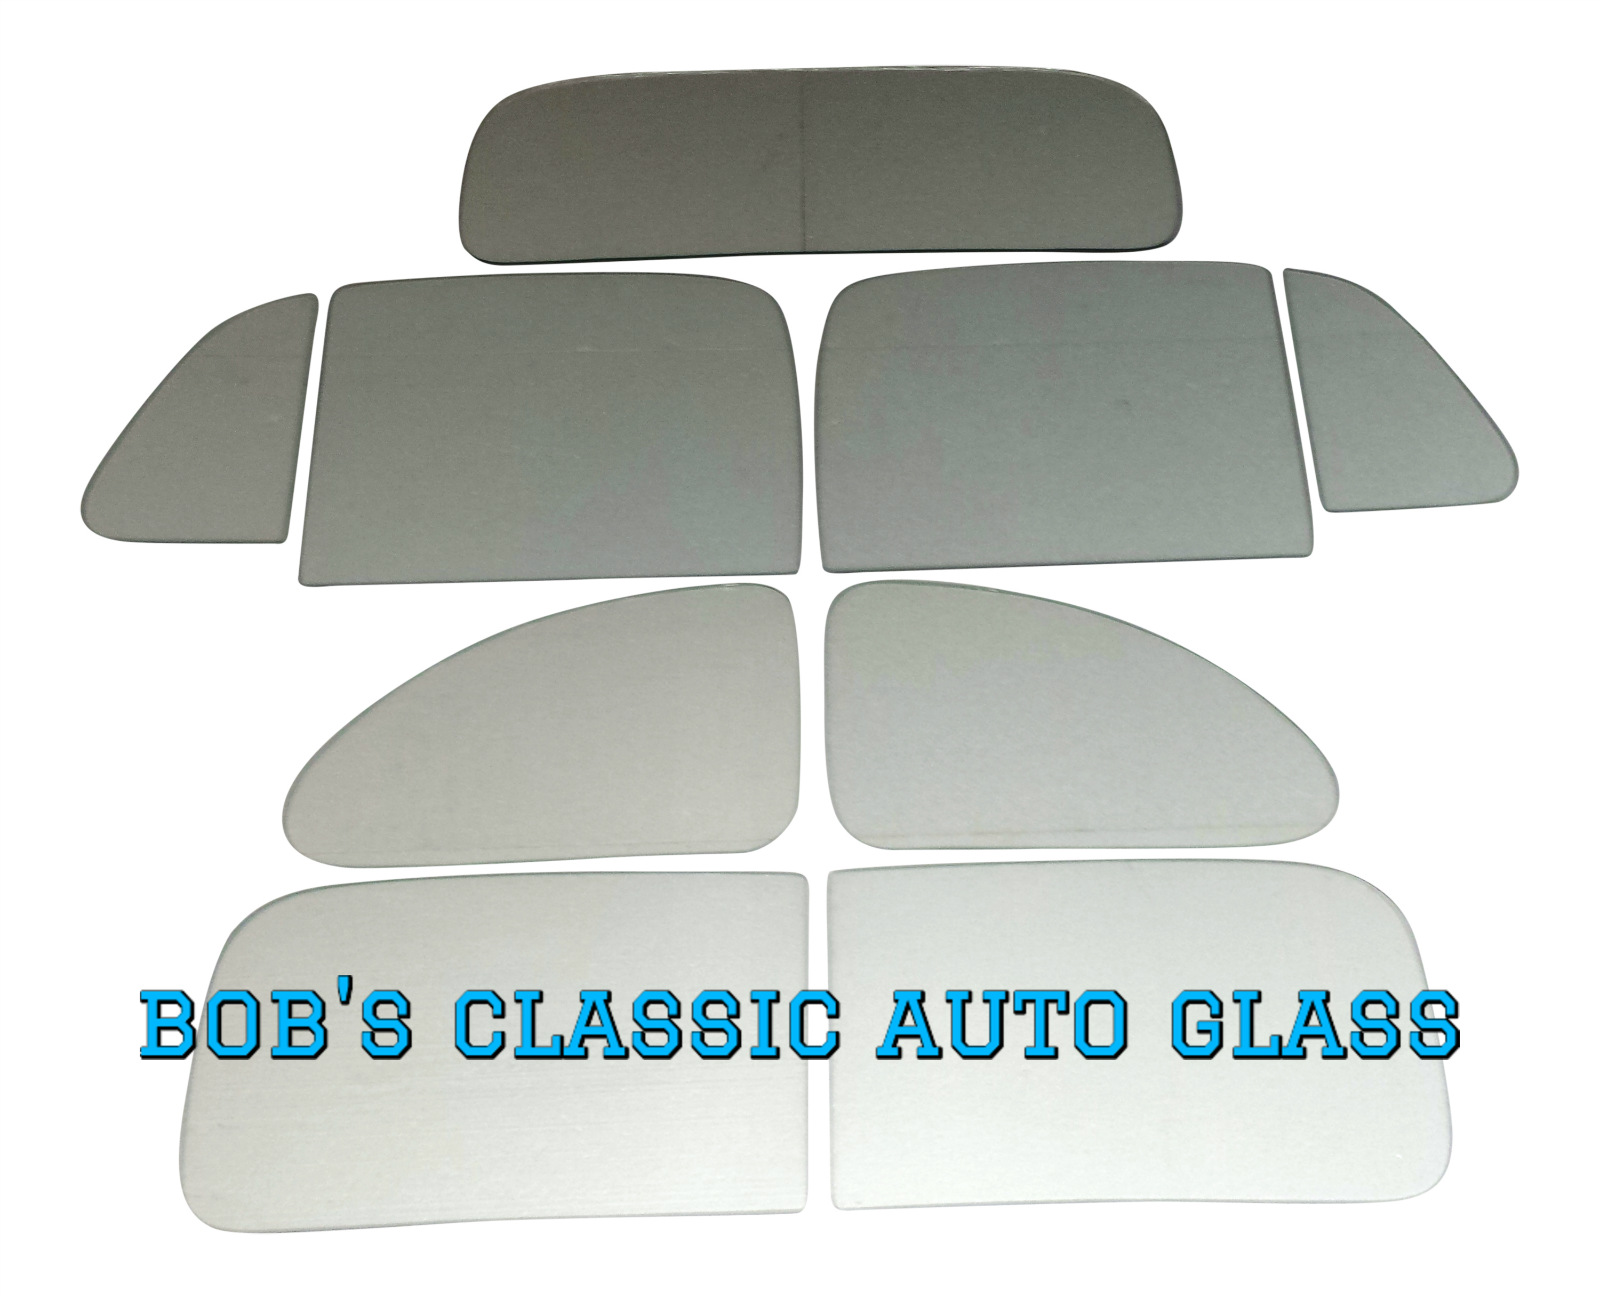 1936 Chevrolet 5 Window Coupe Glass Classic Auto Glass New Vintage ...